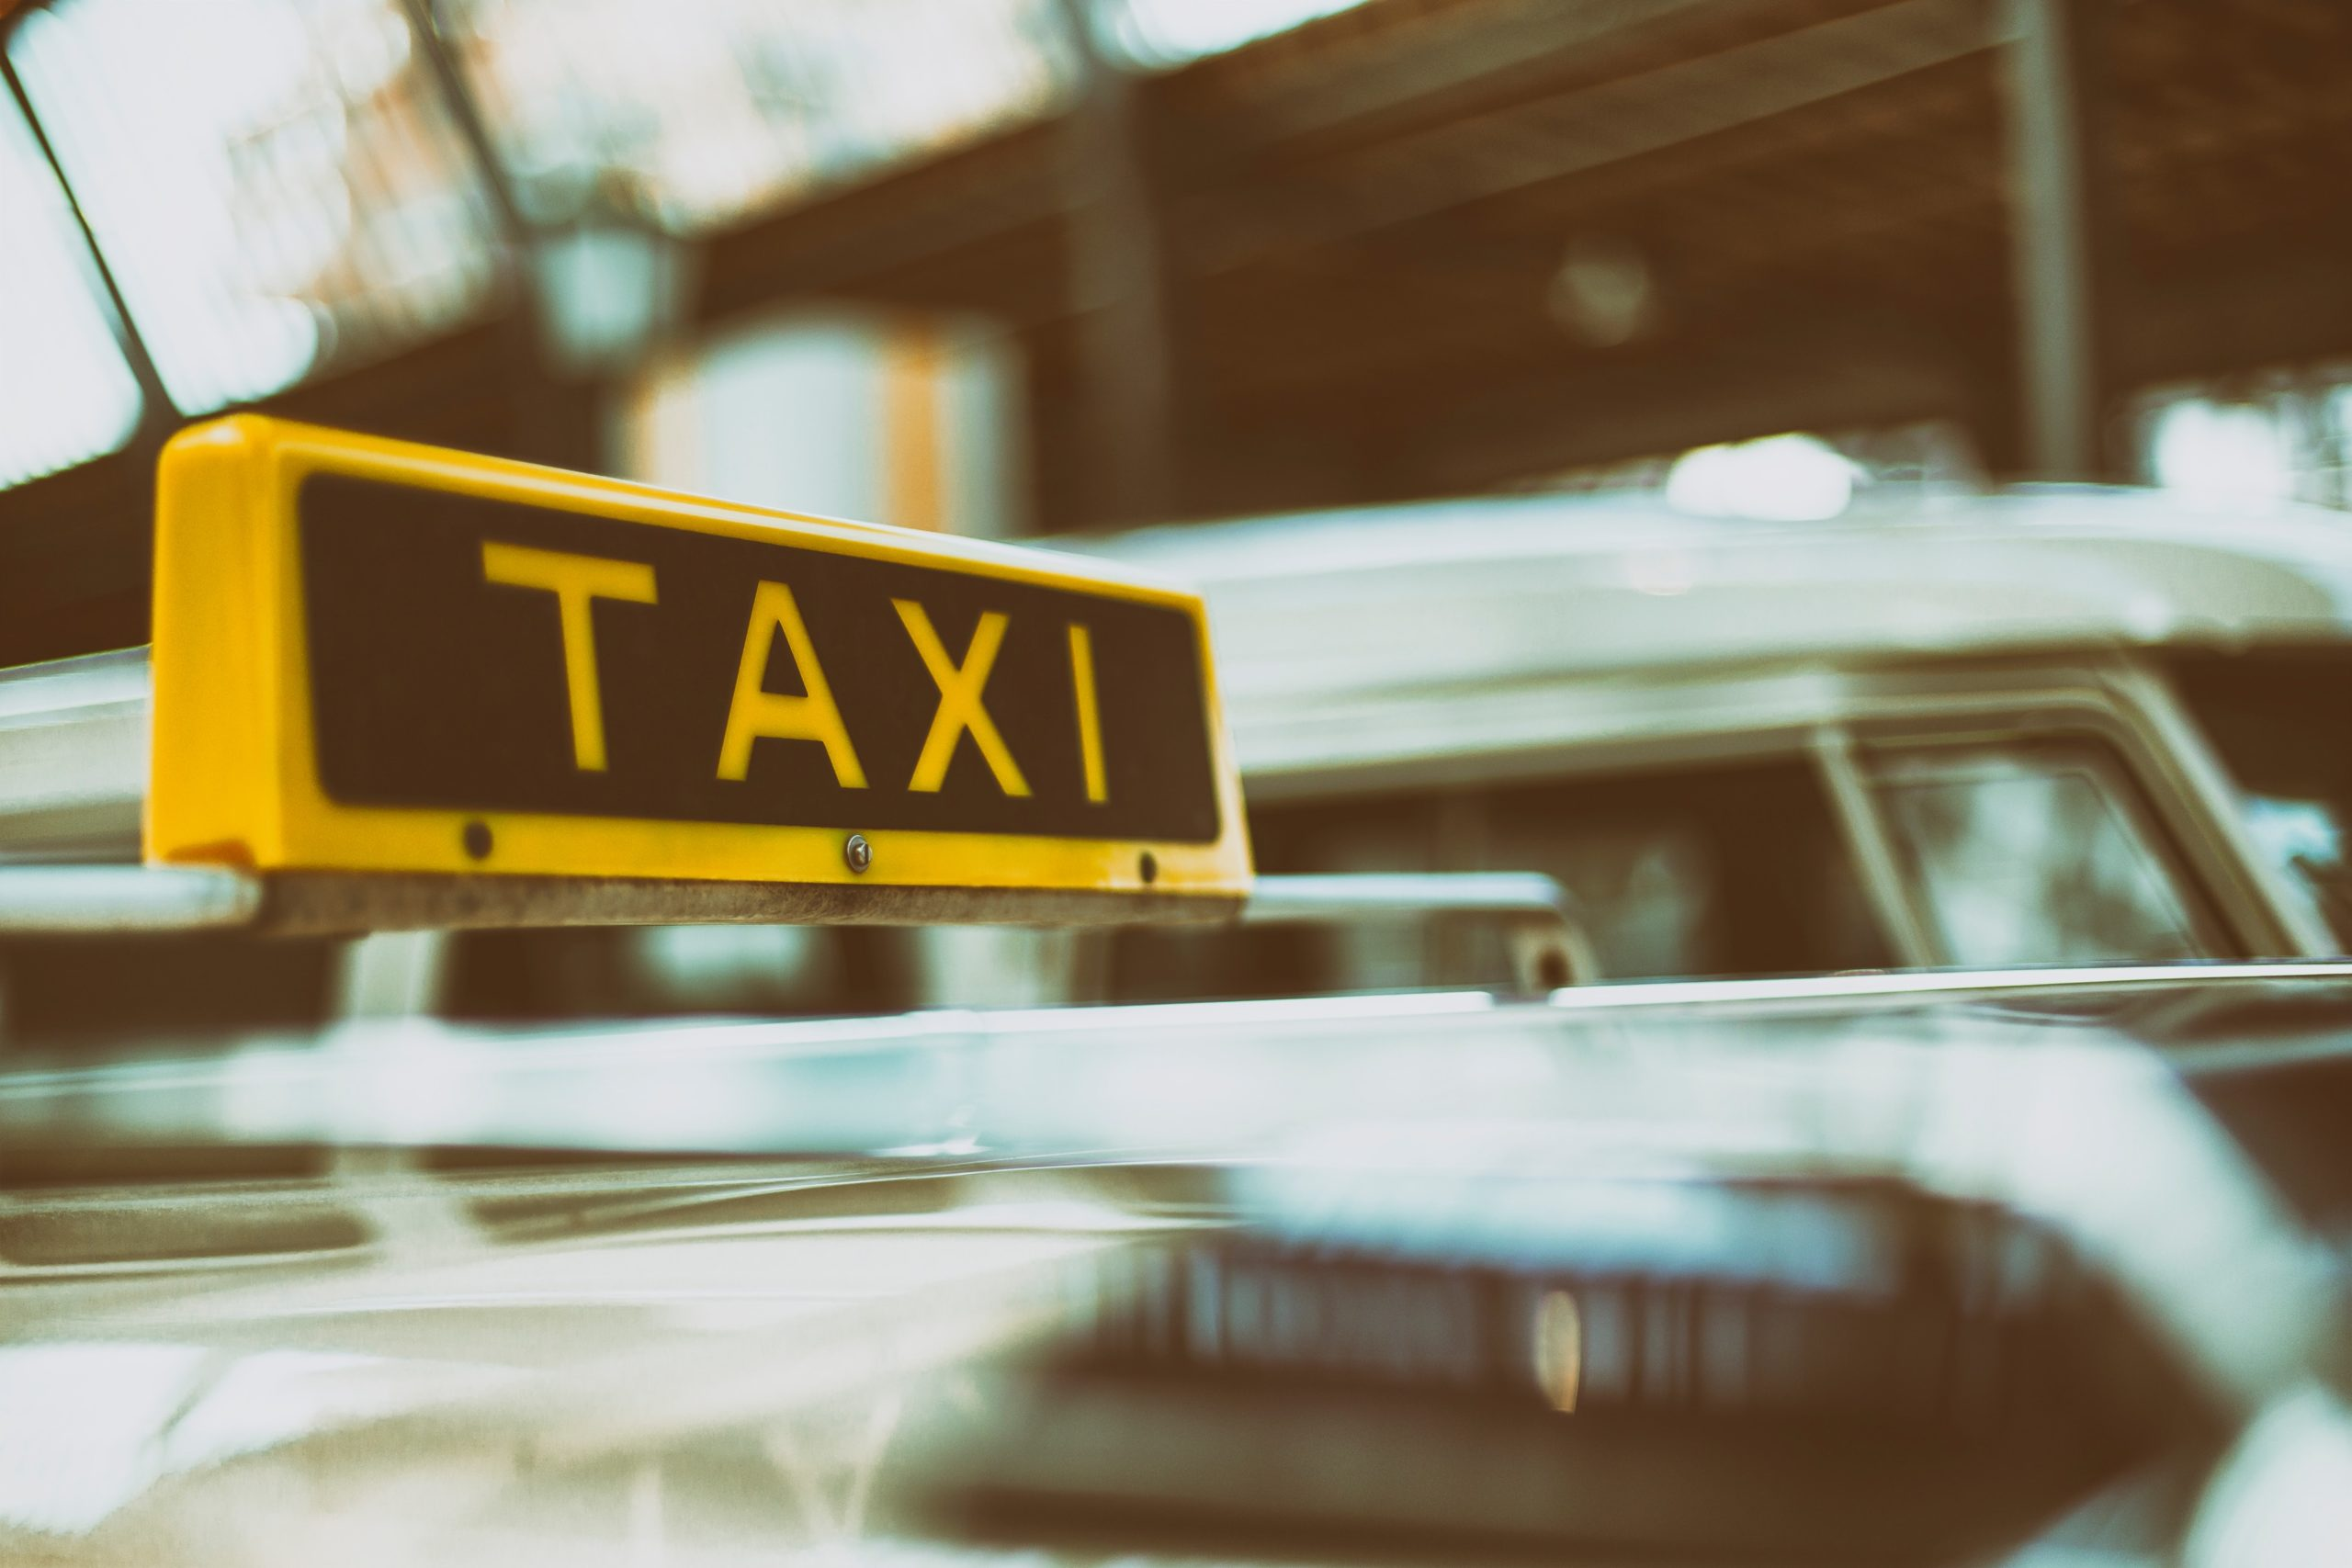 Taxi sign by Peter Kasprzyk